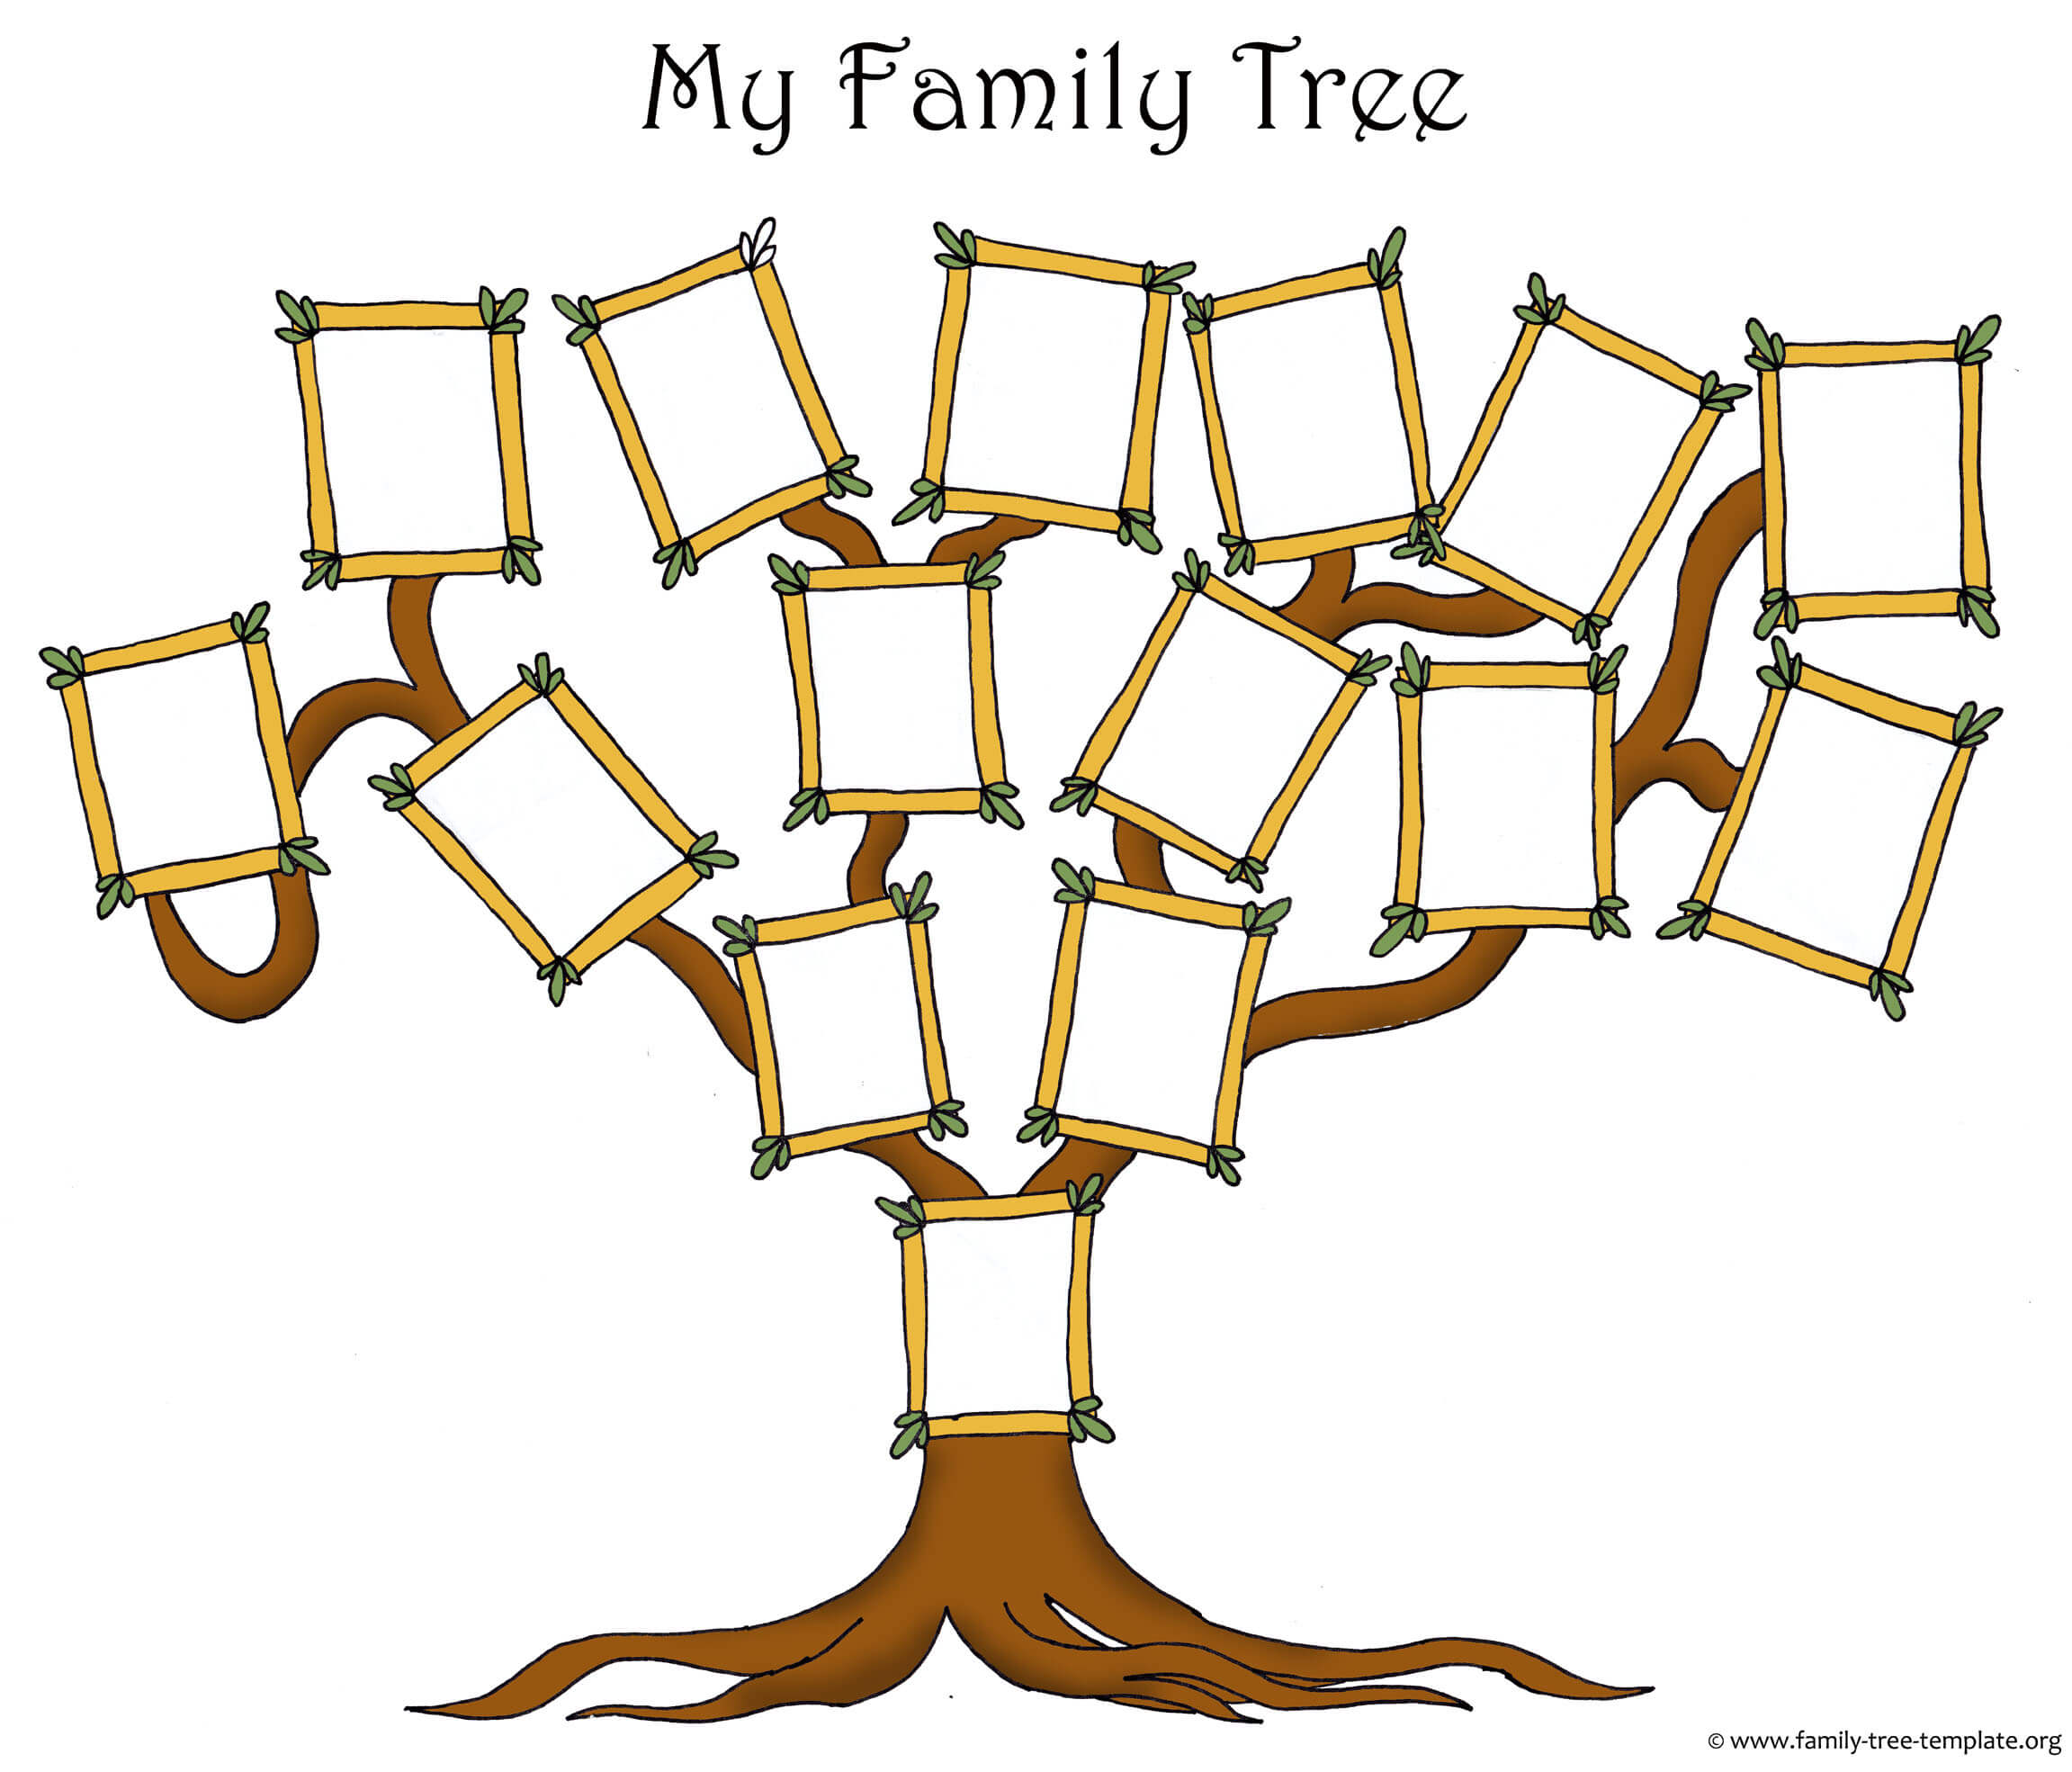 Free Family Tree Template Designs For Making Ancestry Charts In Blank Family Tree Template 3 Generations